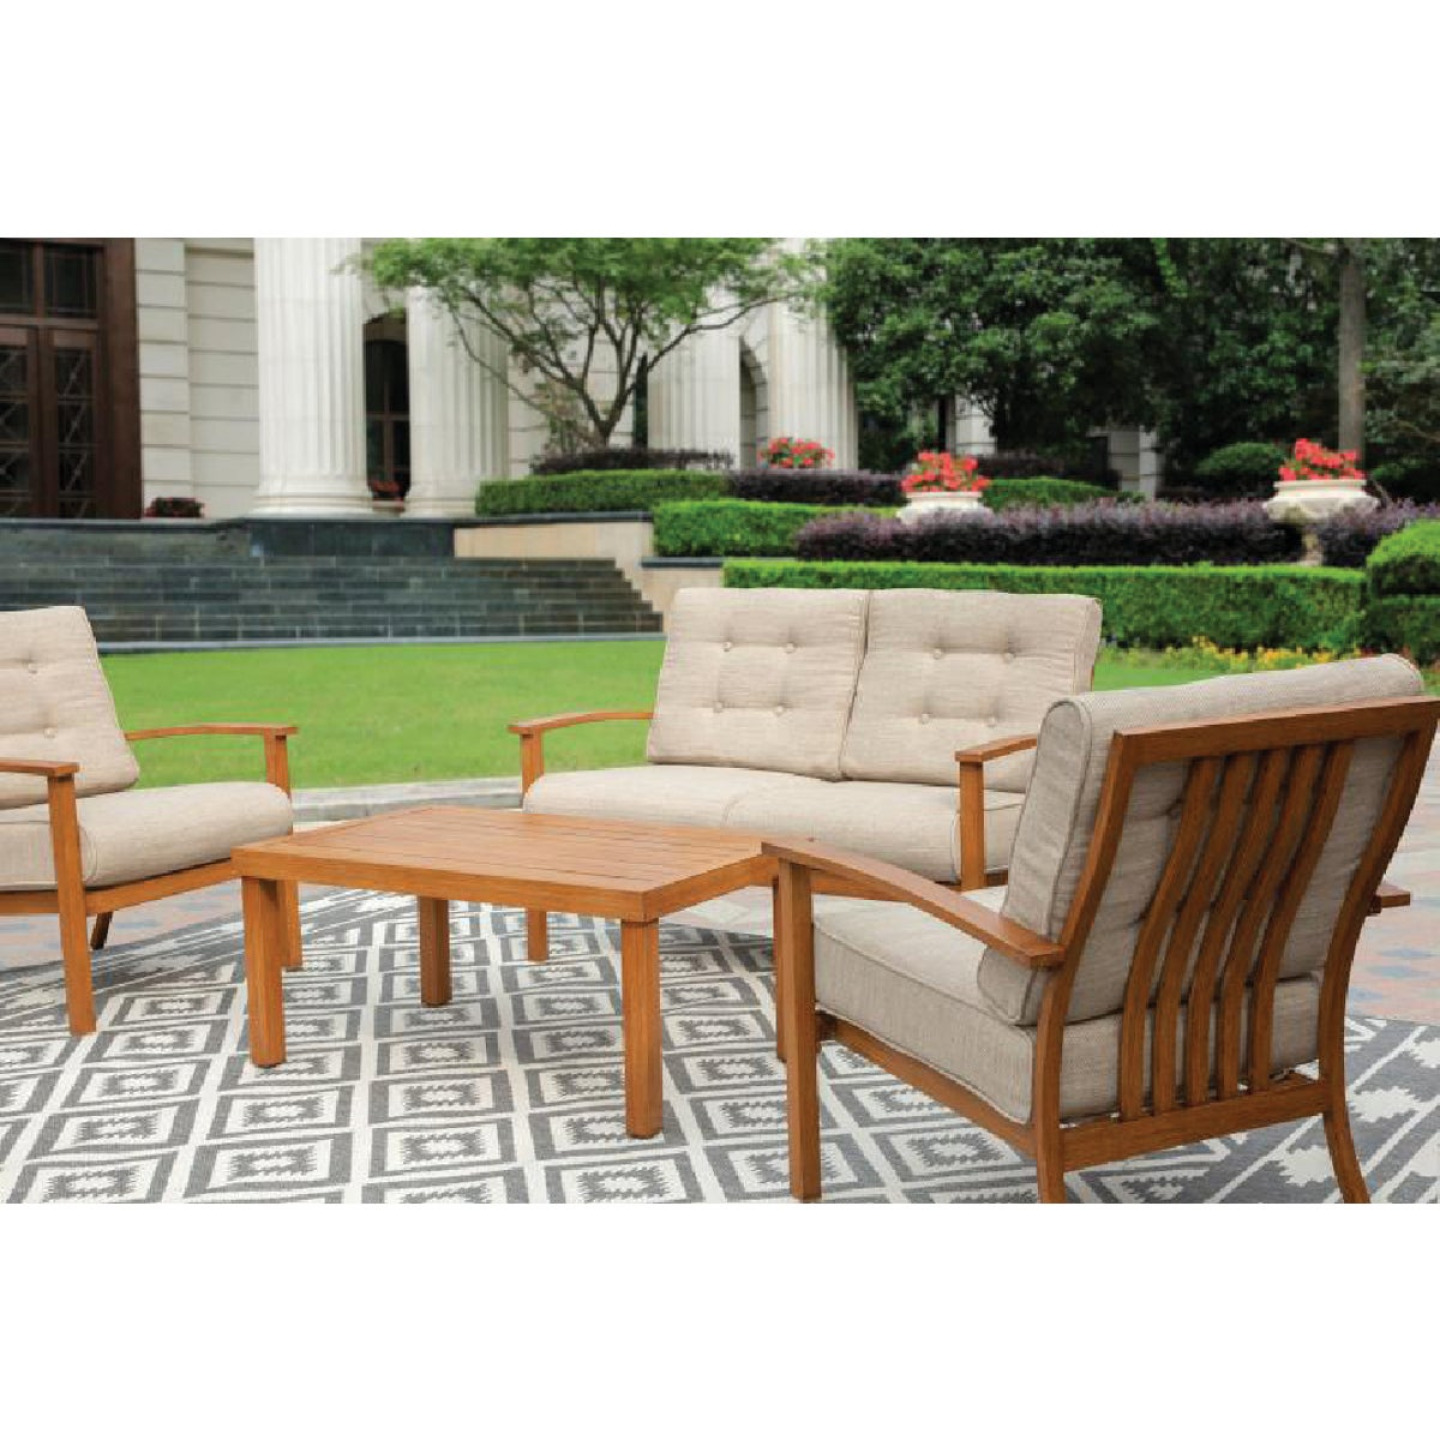 Leisure Classics Beaufort 4-Piece Chat Set Image 3